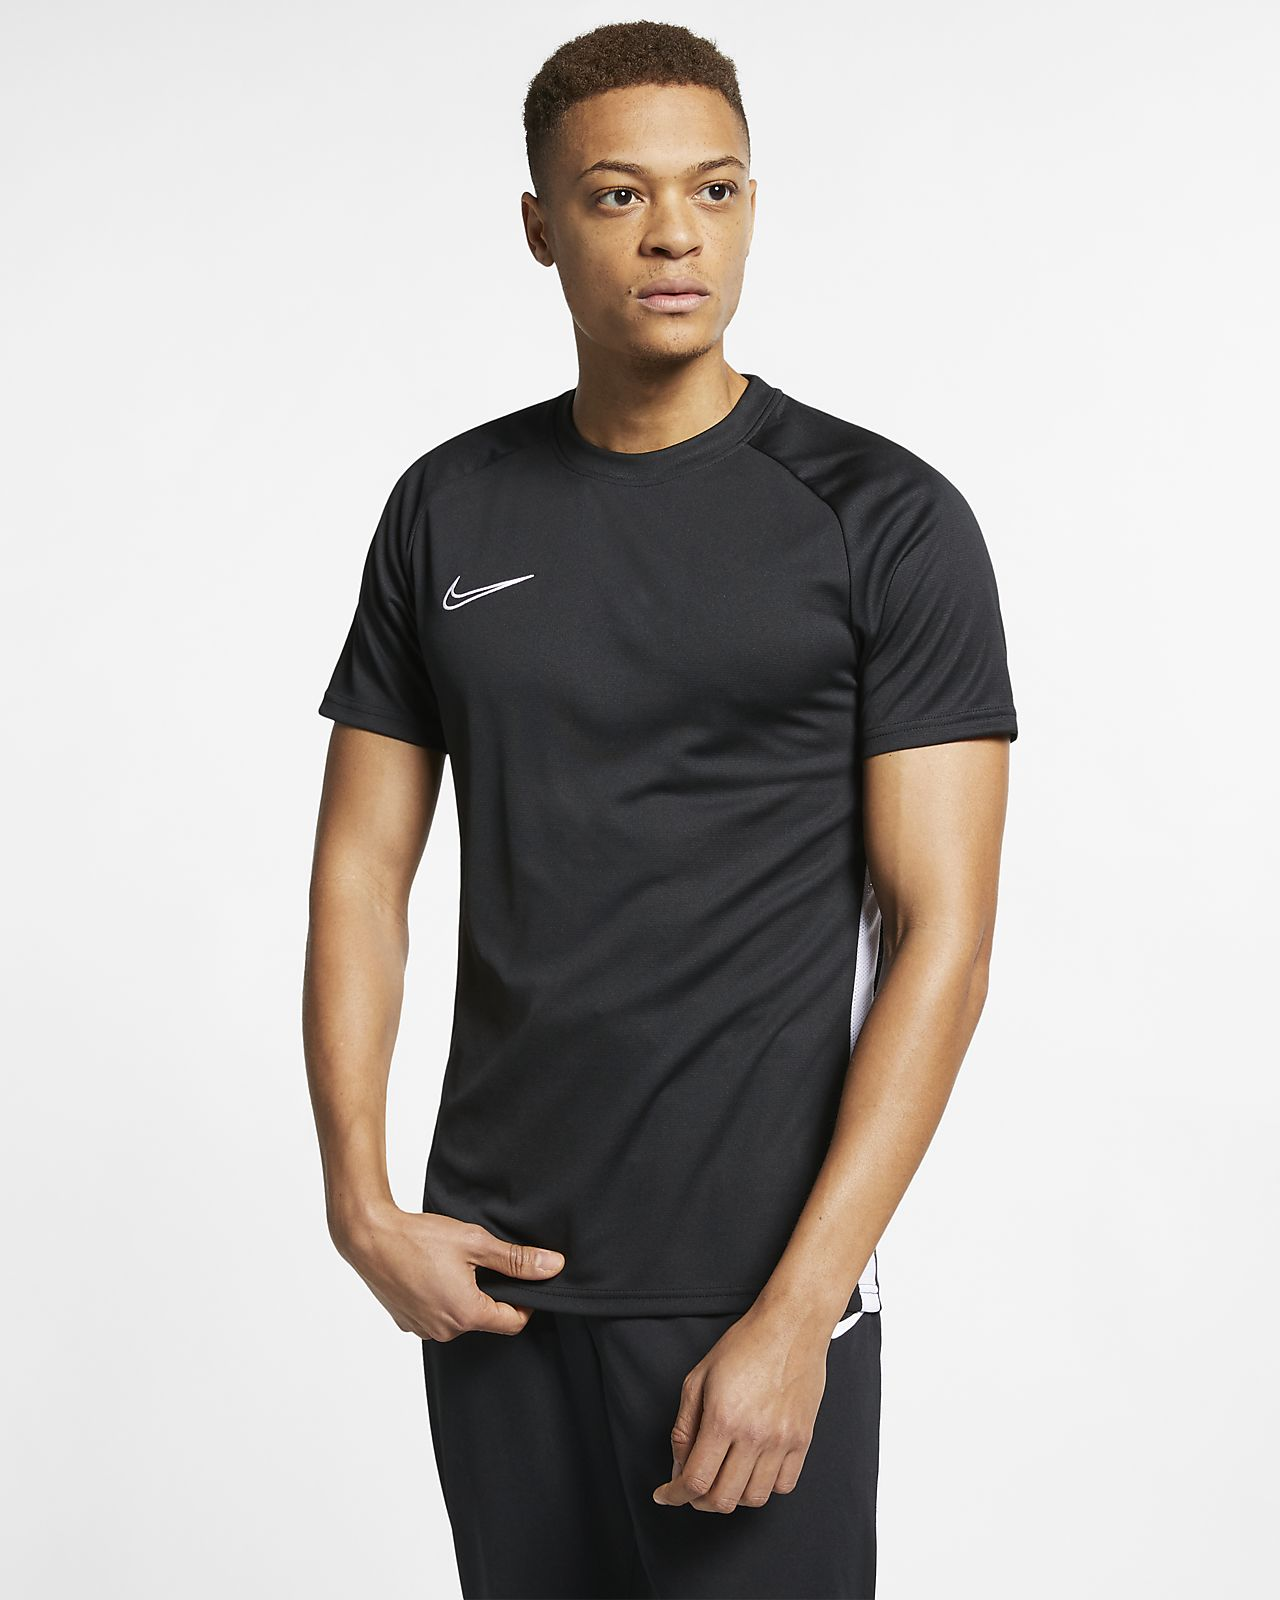 Nike Dri-FIT Academy Men's Soccer Short-Sleeve Top. Nike.com